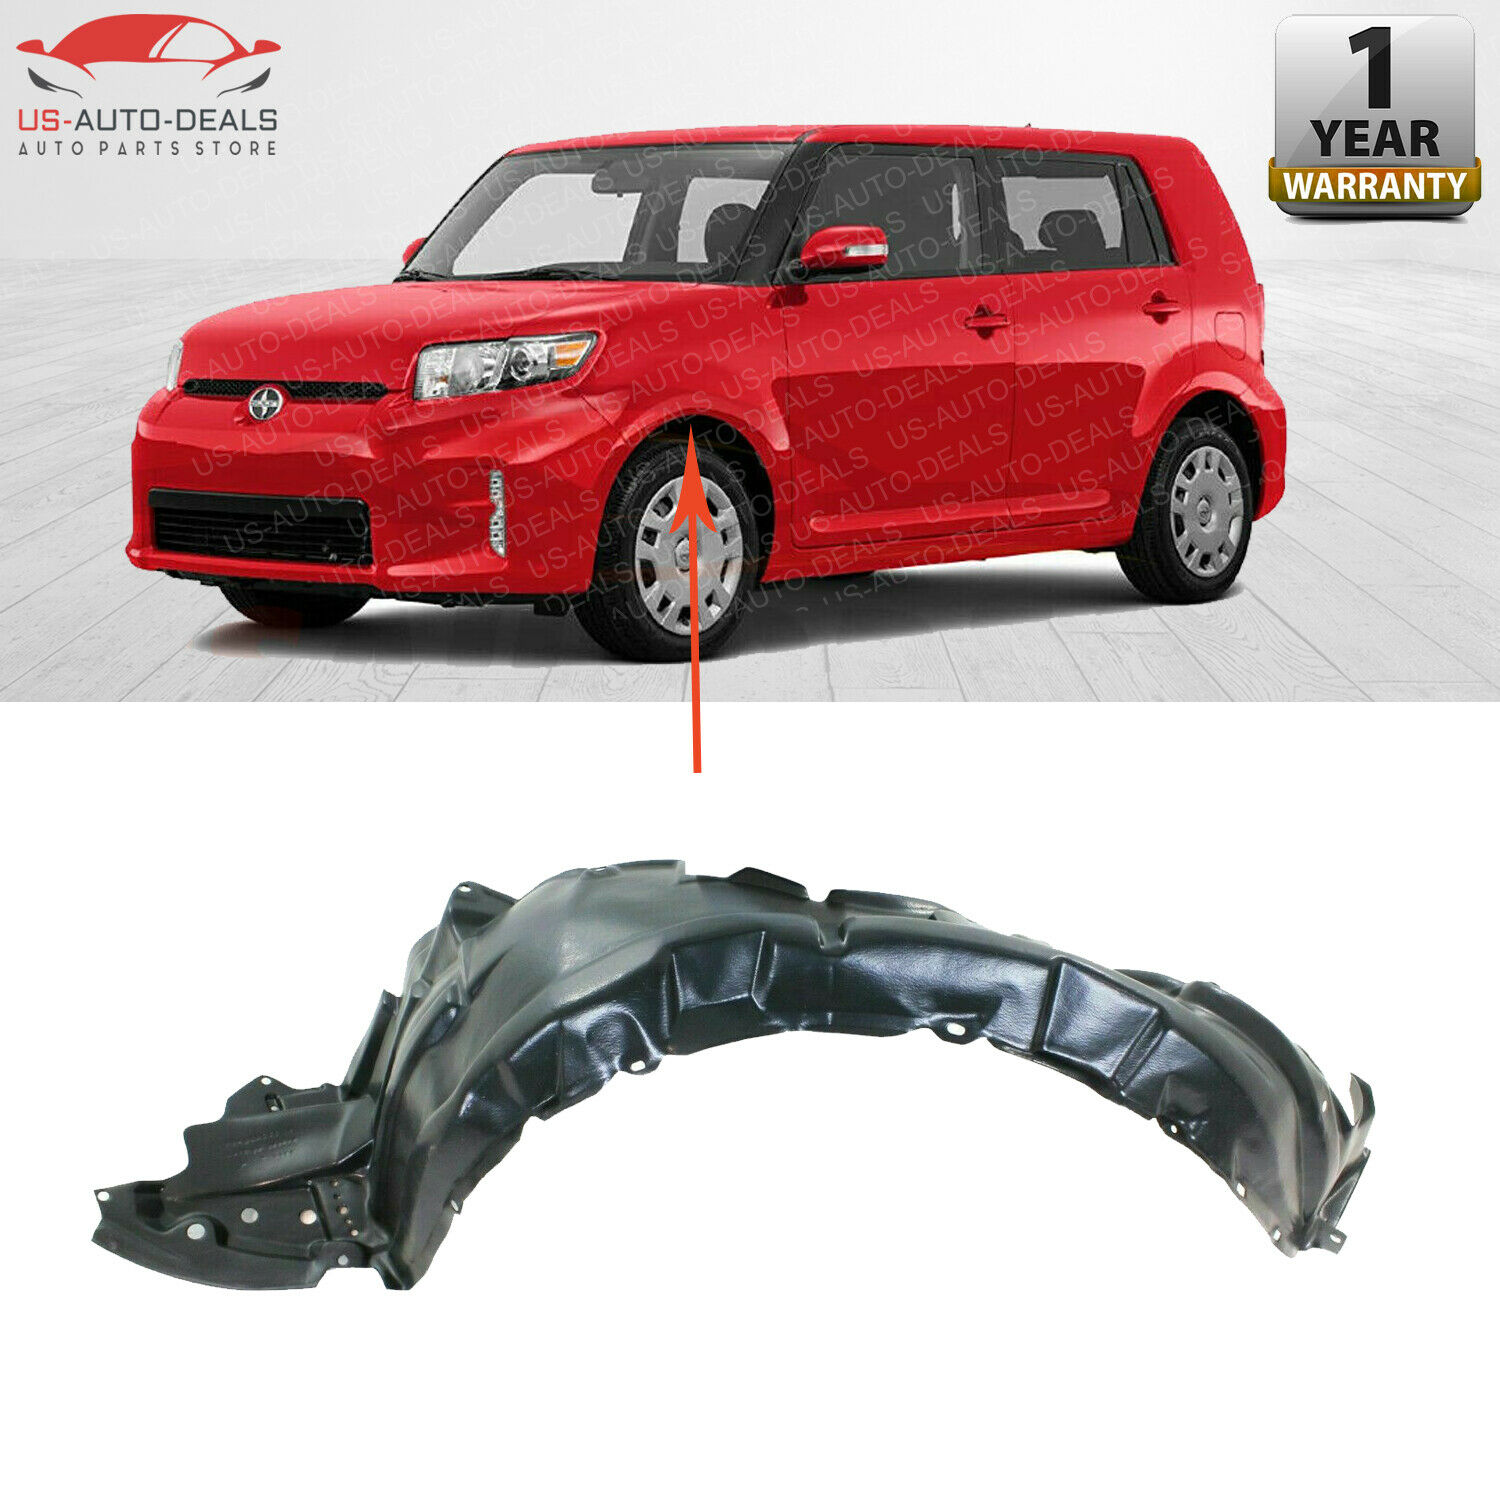 Fender Liner Compatible with 2011-2015 Scion xB Plastic Front Passenger Side